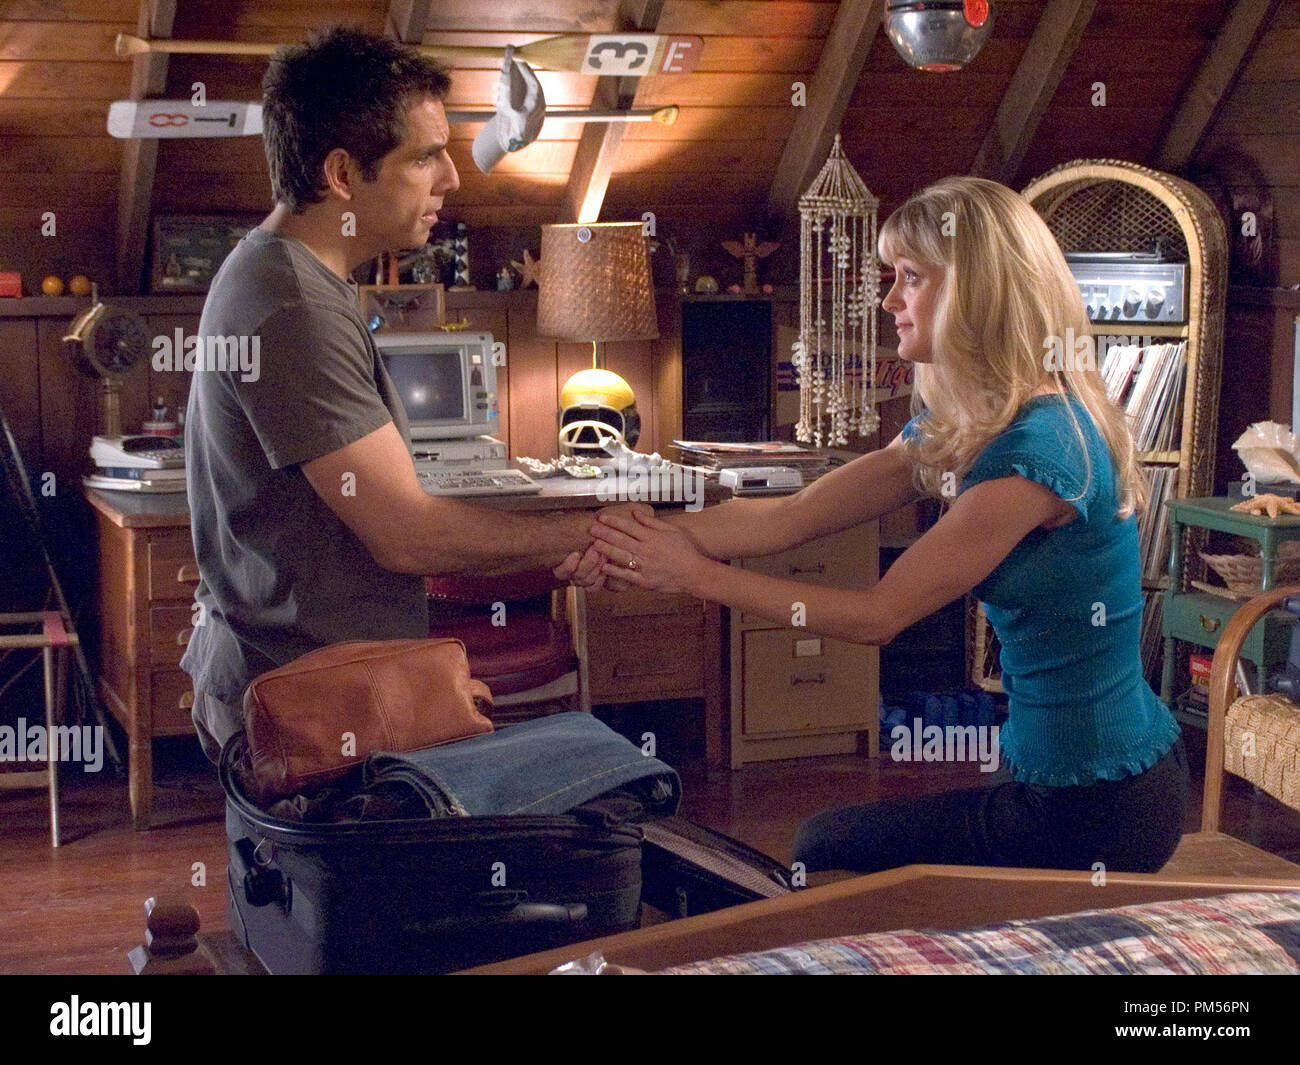 Film Still from 'Meet the Fockers' Ben Stiller, Teri Polo © 2004 Universal Pictures Photo Credit: Tracy Bennett File Reference # 307351309THA  For Editorial Use Only -  All Rights Reserved - Stock Image